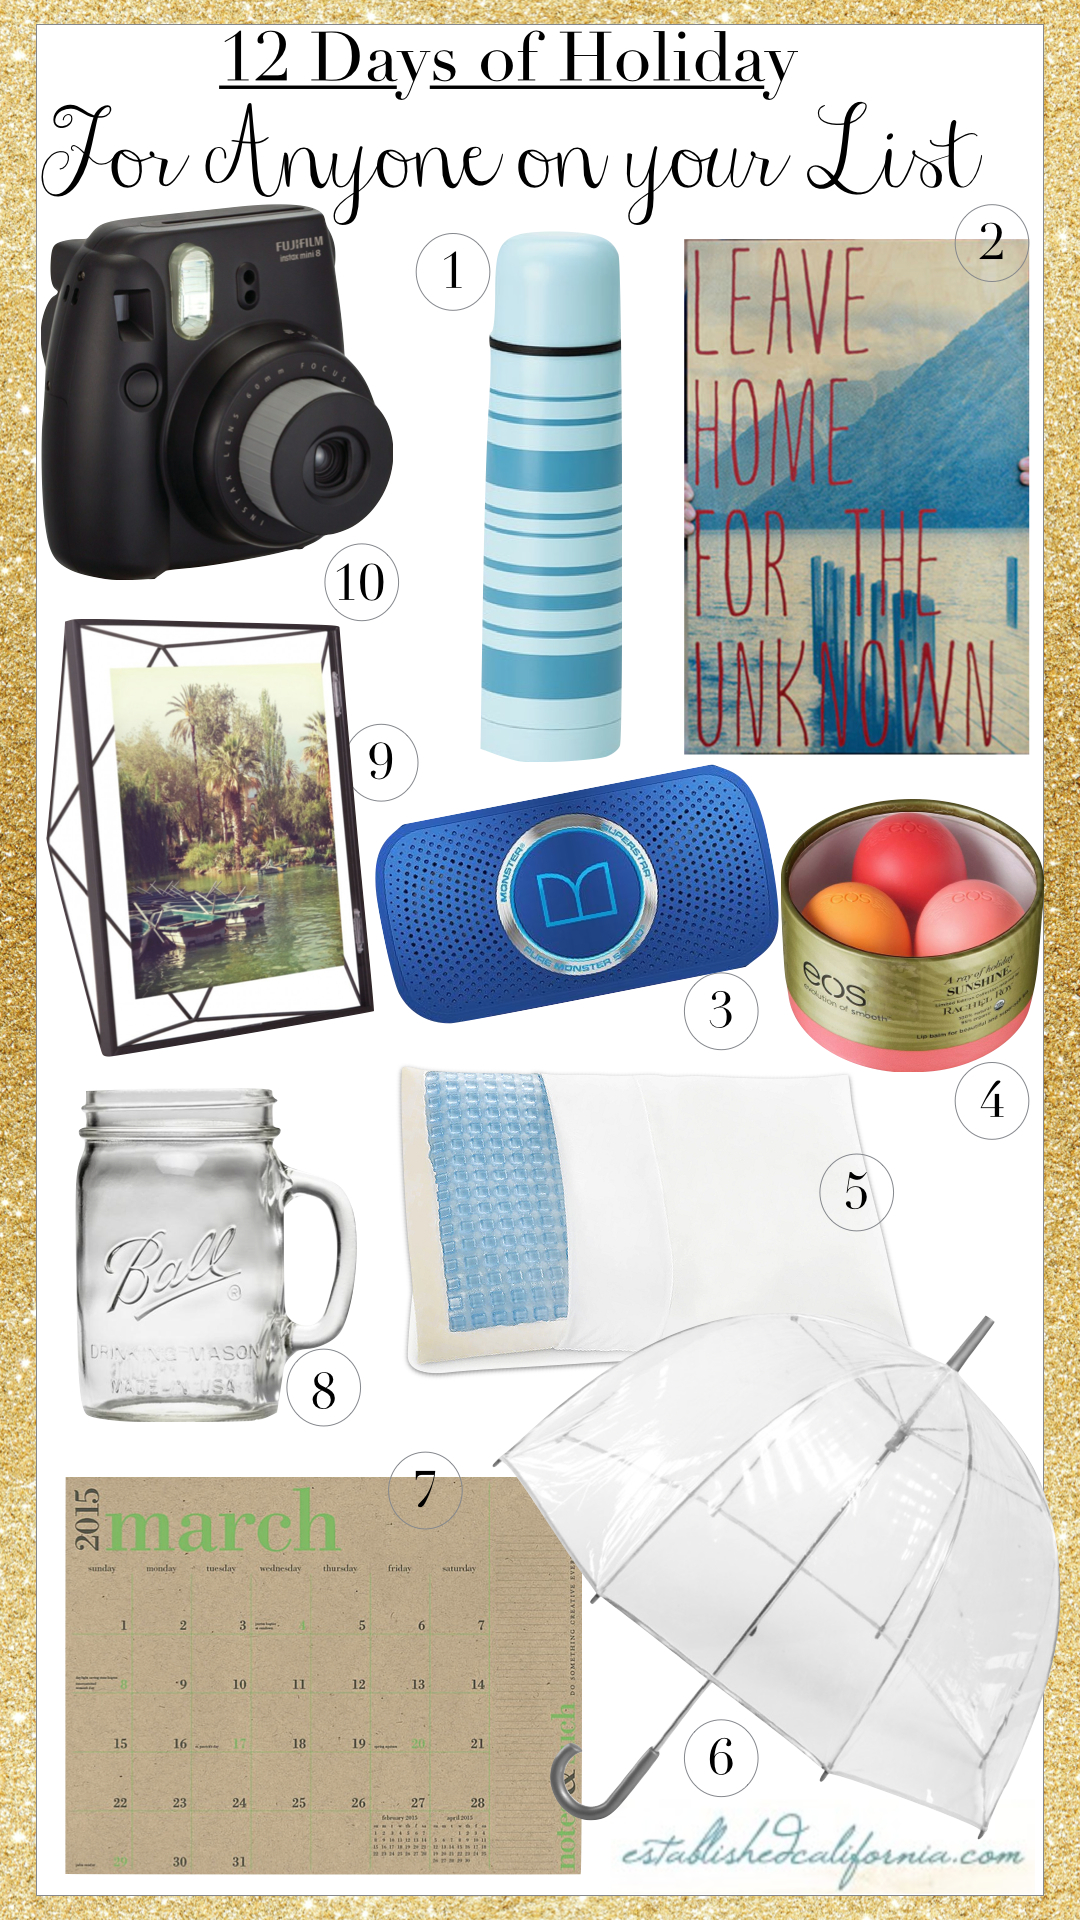 Est Gift Guides For Anyone on your List